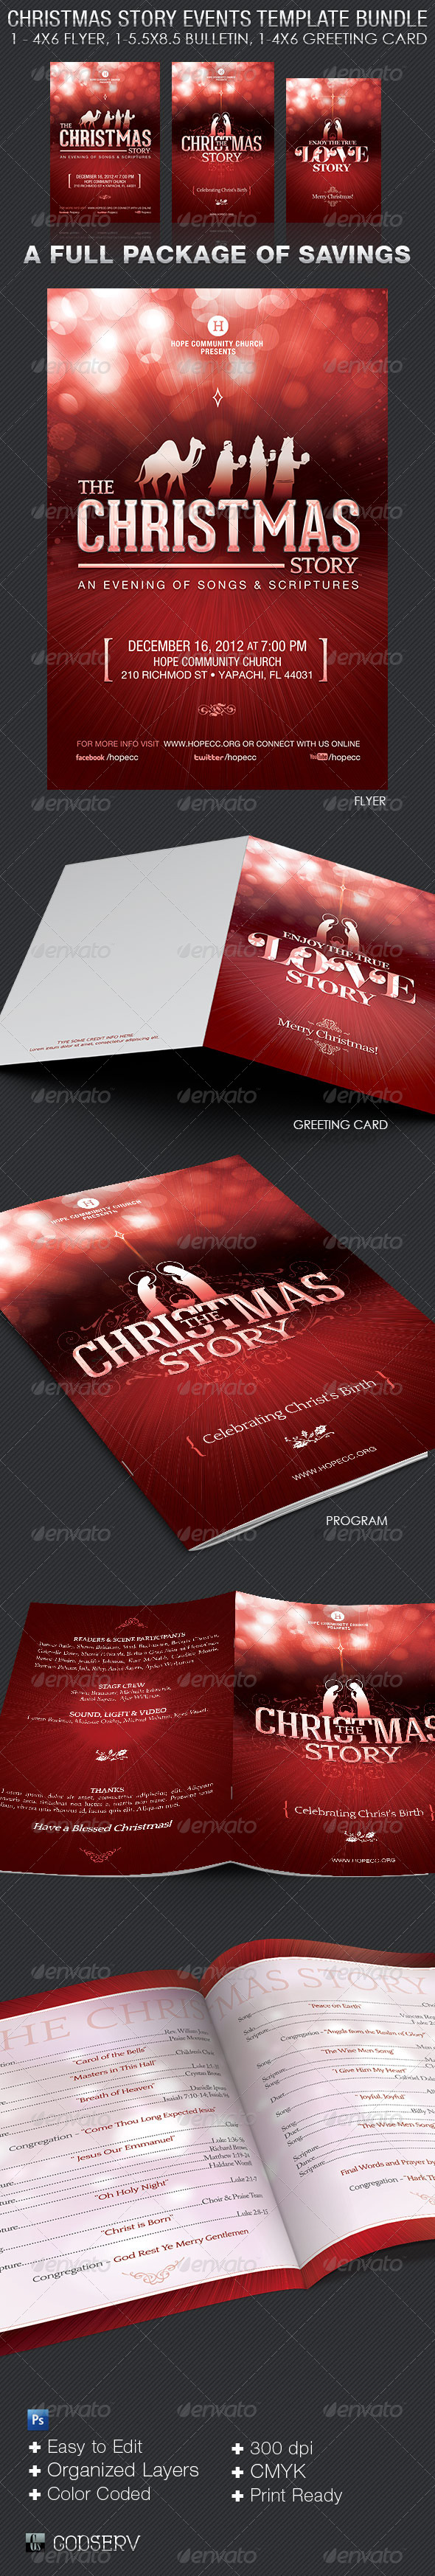 GraphicRiver Christmas Story Event Template Bundle 6247000